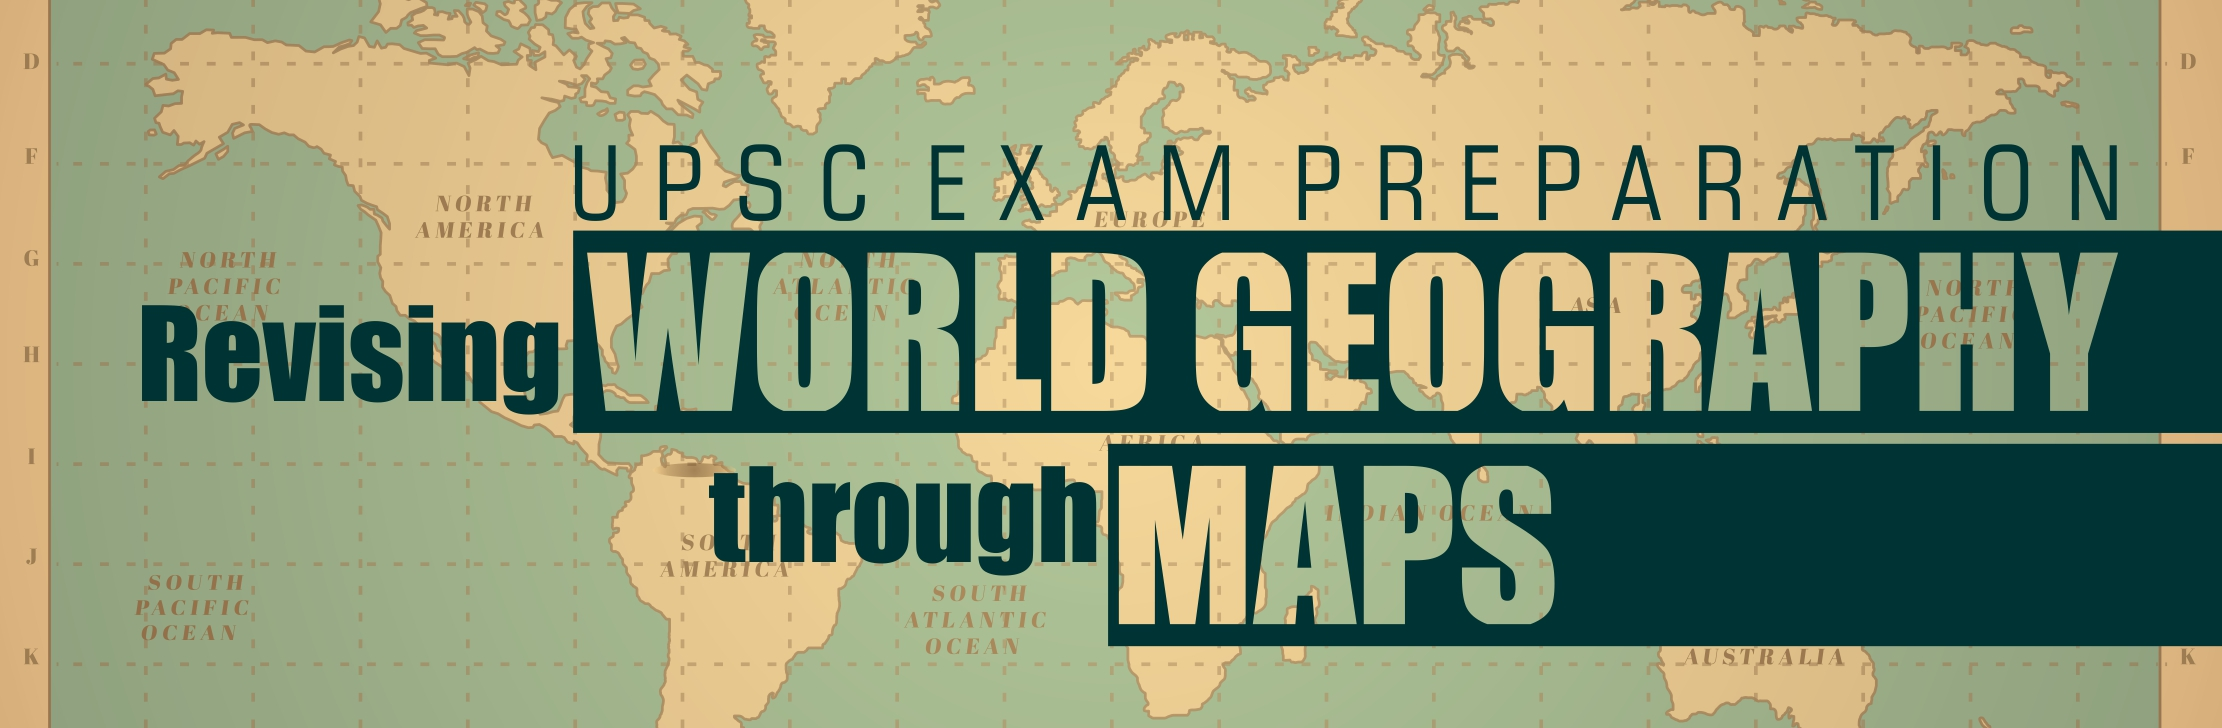 Upsc exam preparation revising world geography through maps upsc exam preparation revising world geography through maps gumiabroncs